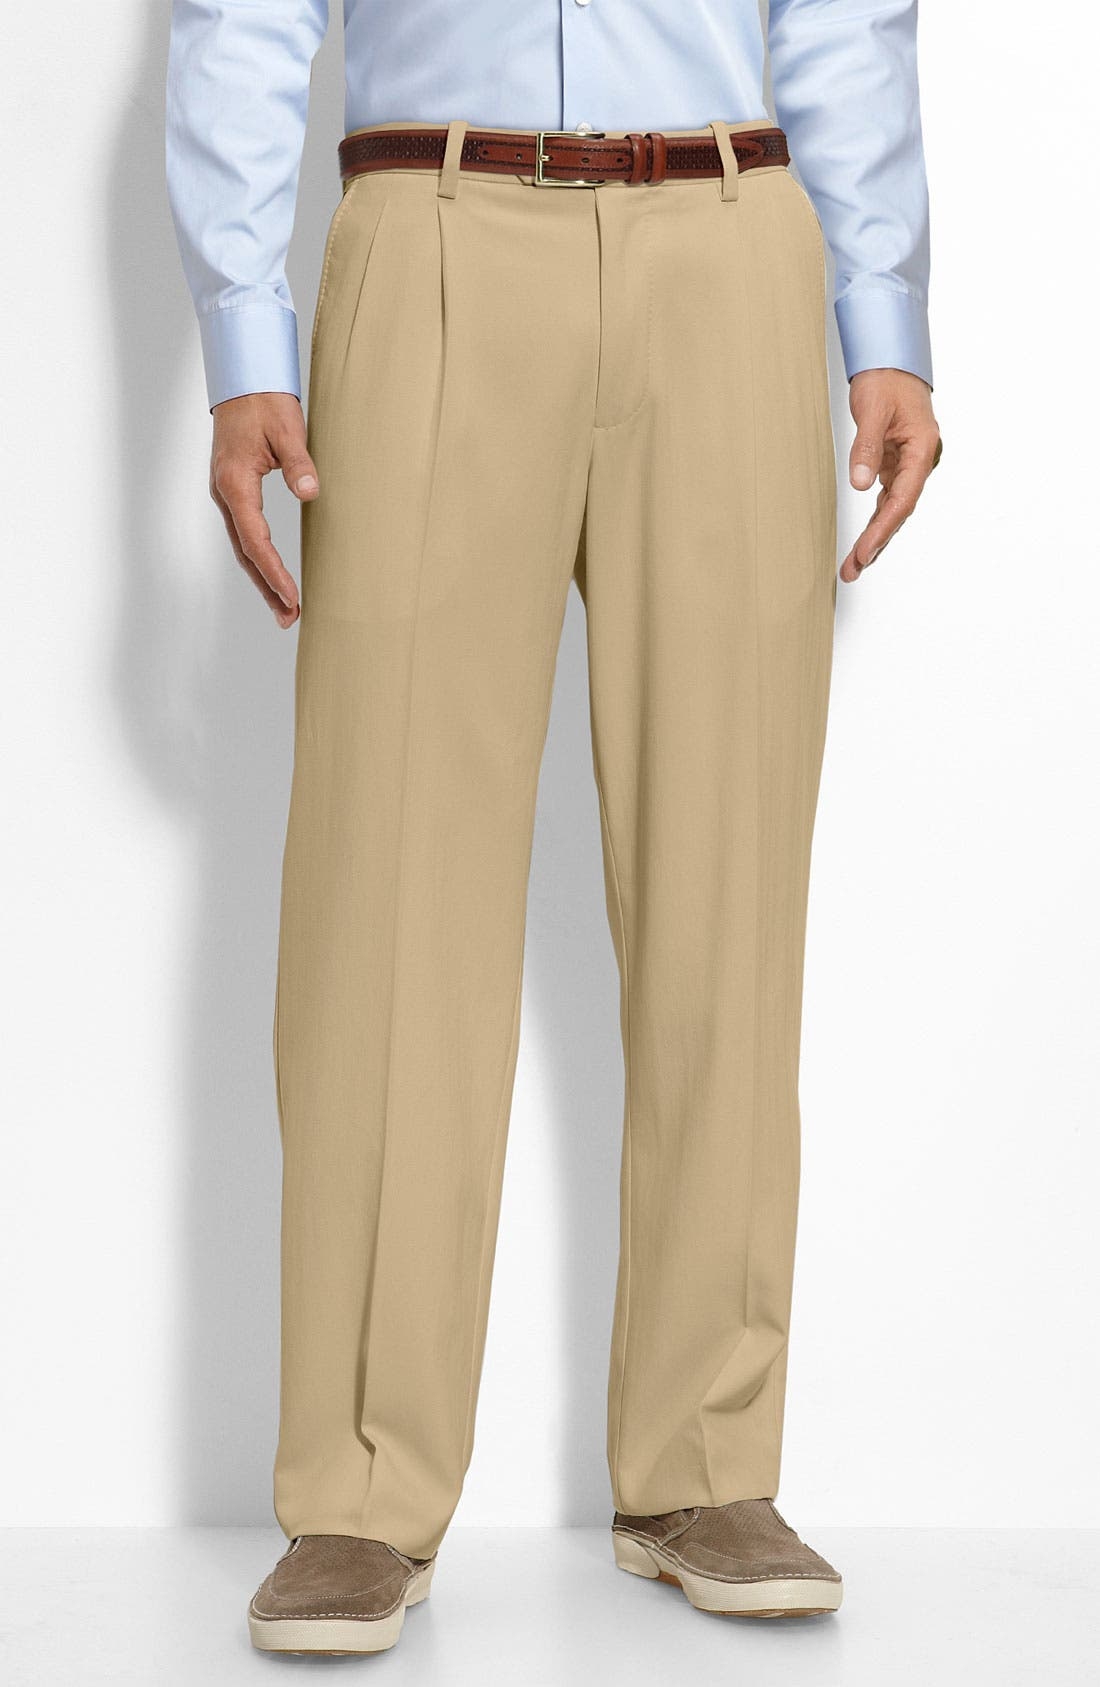 Main Image - Tommy Bahama 'Flying Fishbone' Pleated Pants (Big & Tall)